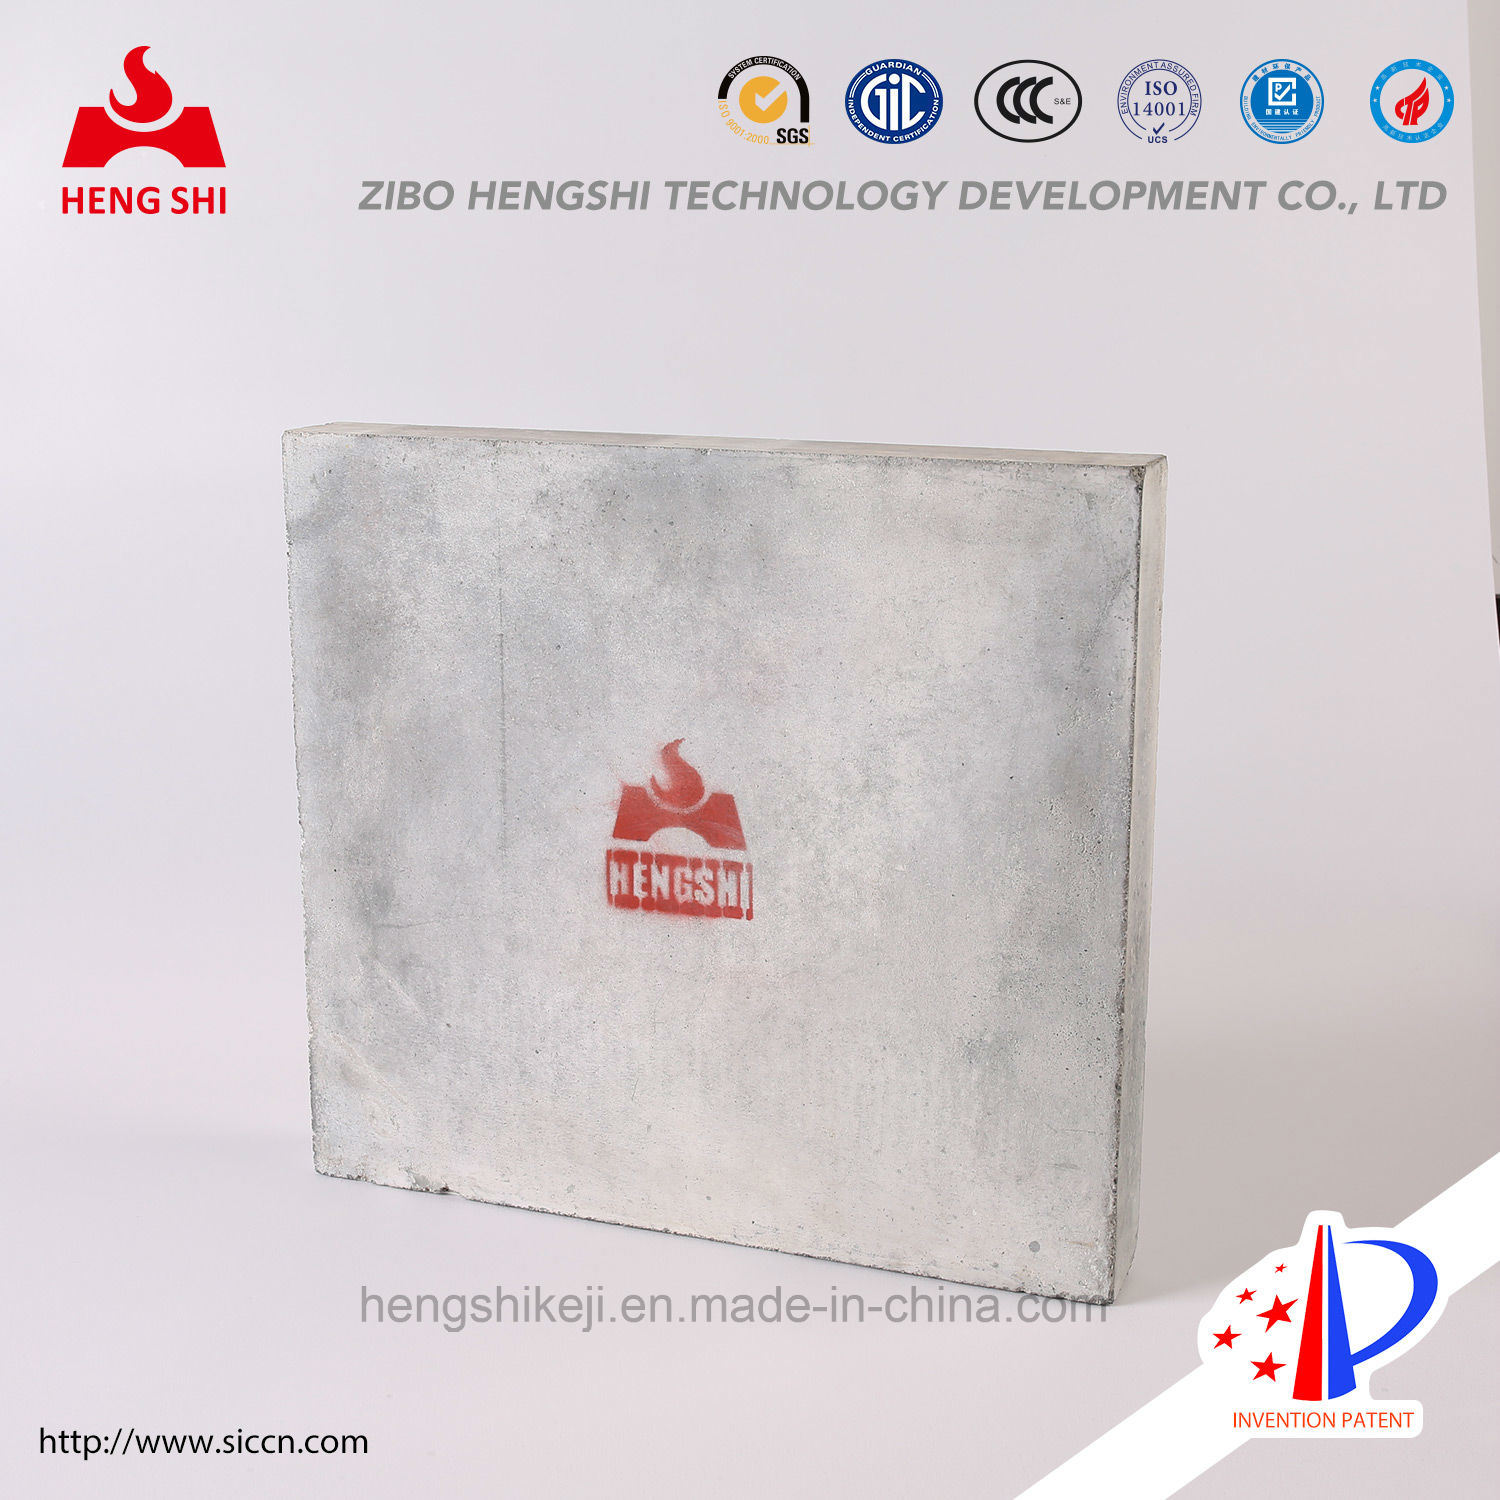 LG-15 Silicon Nitride Bonded Silicon Carbide Brick